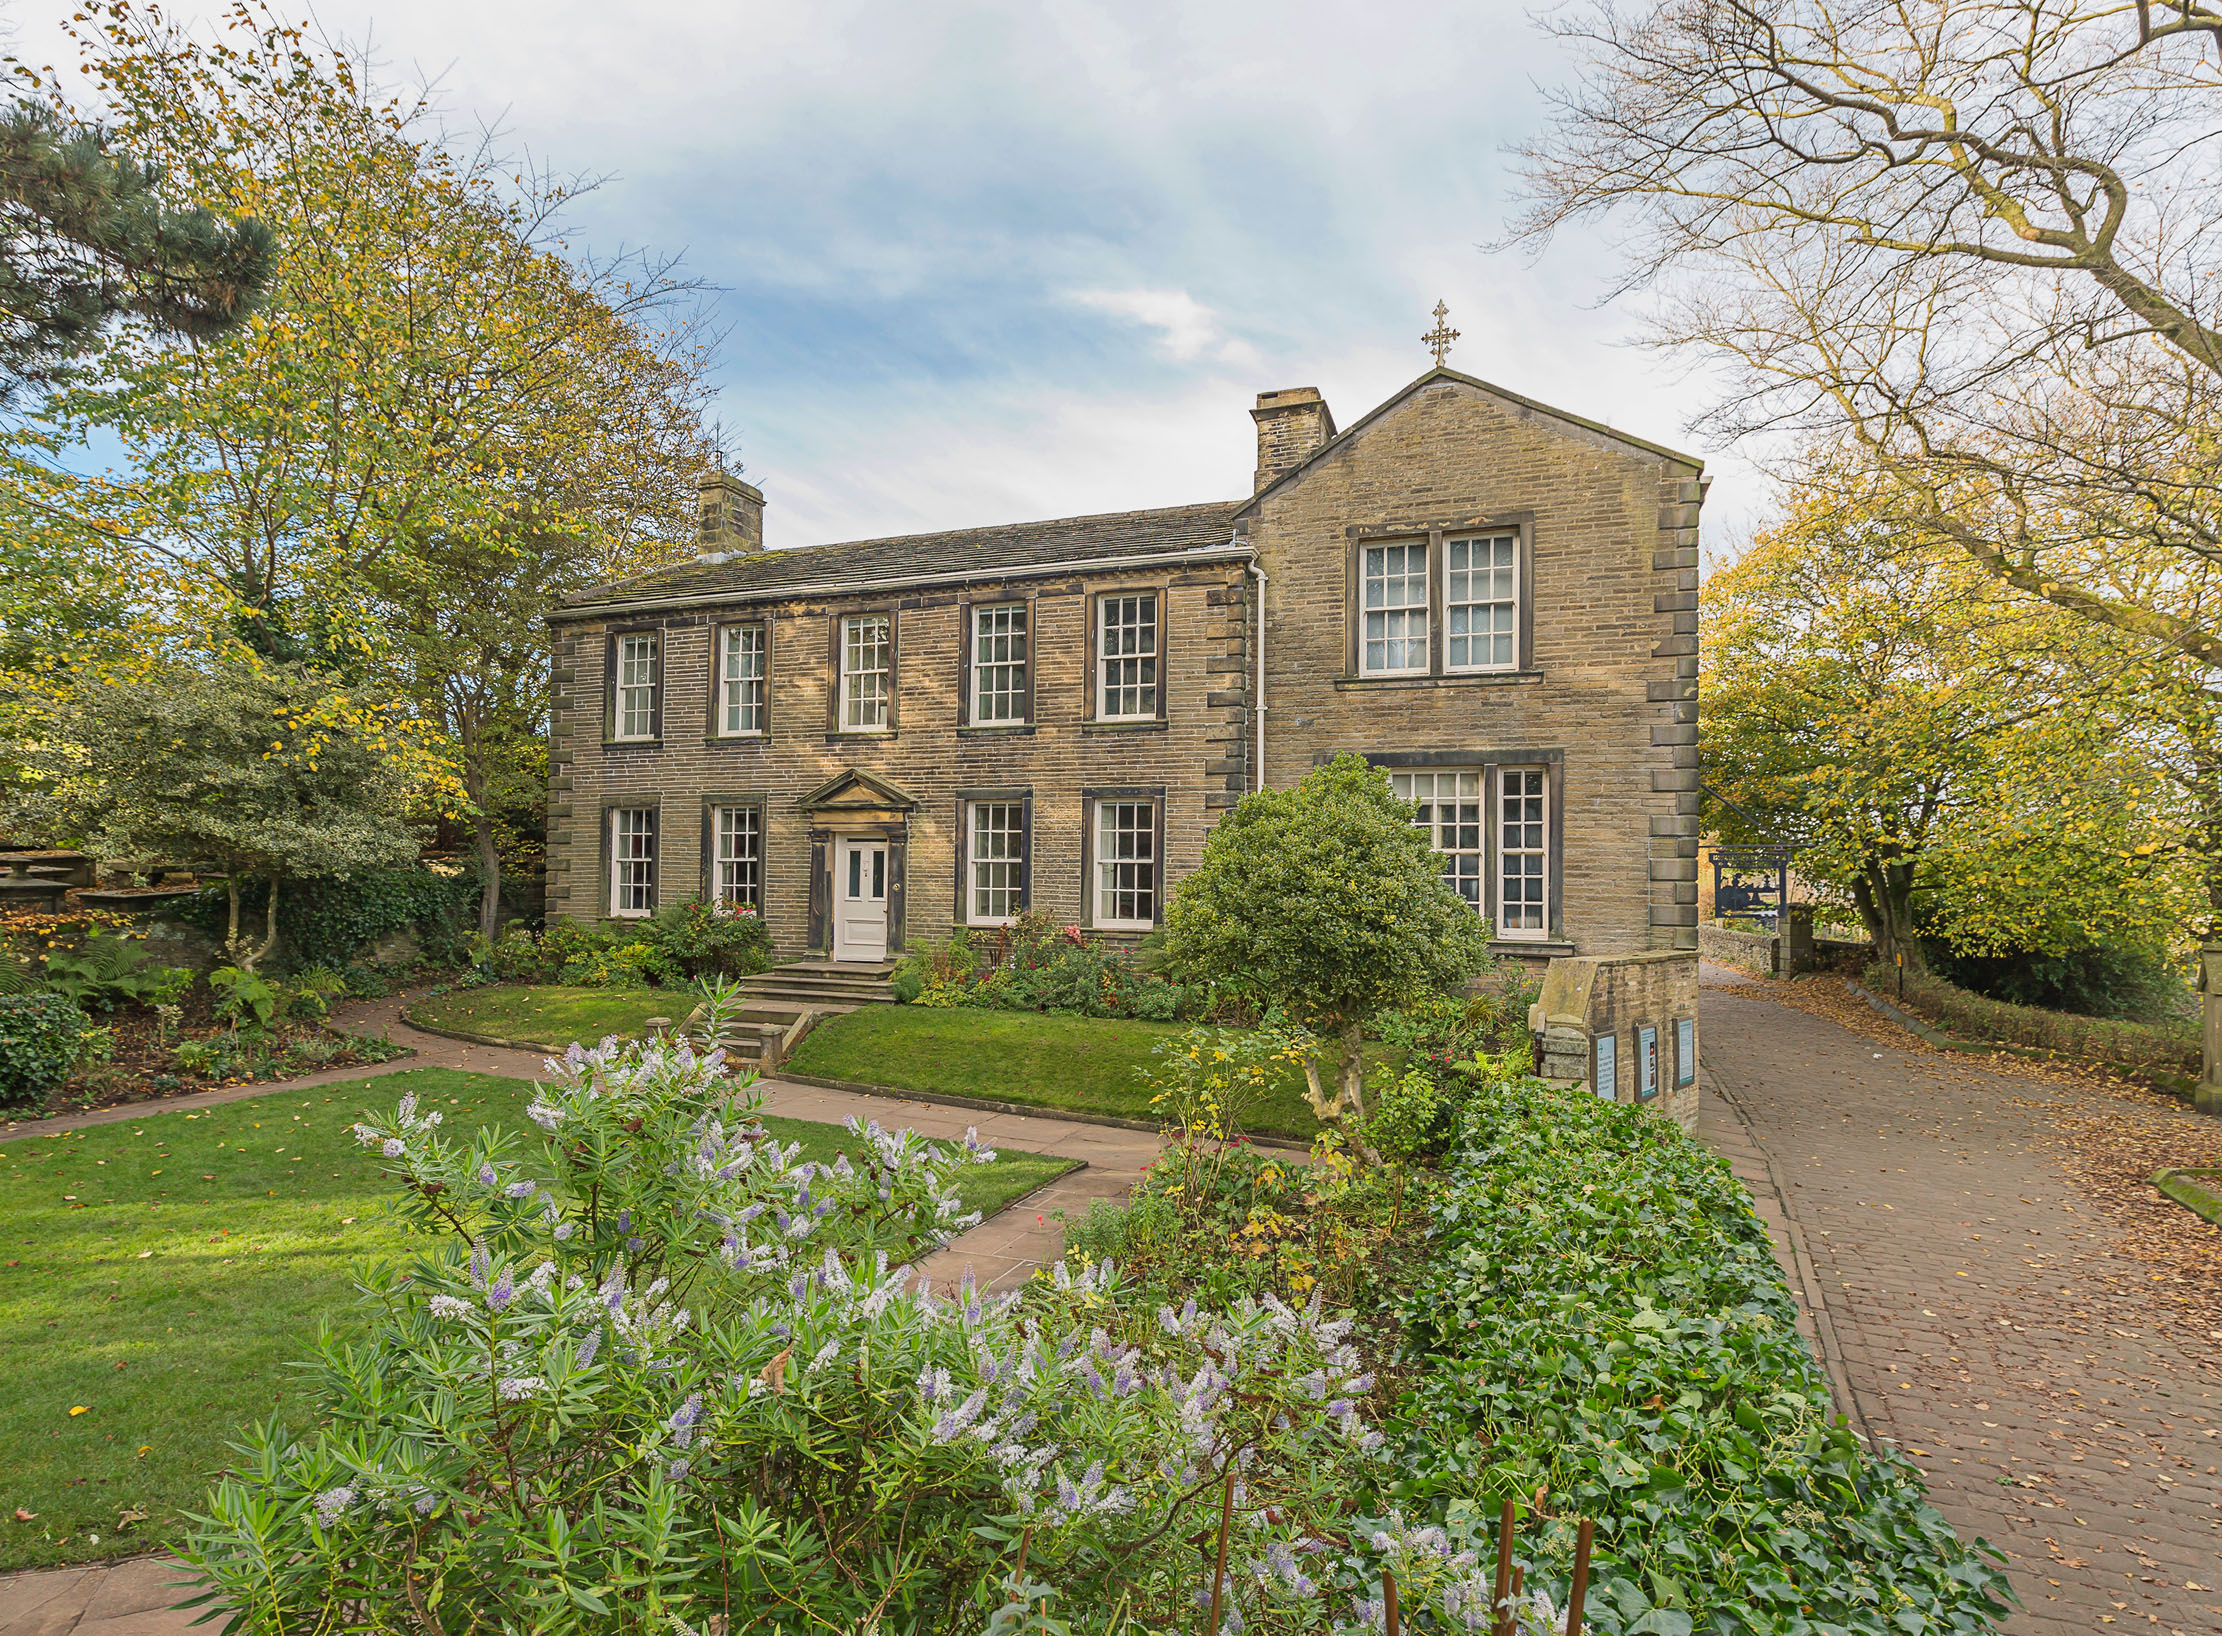 Inside Haworth: The humble parsonage where the Brontë sisters changed literature